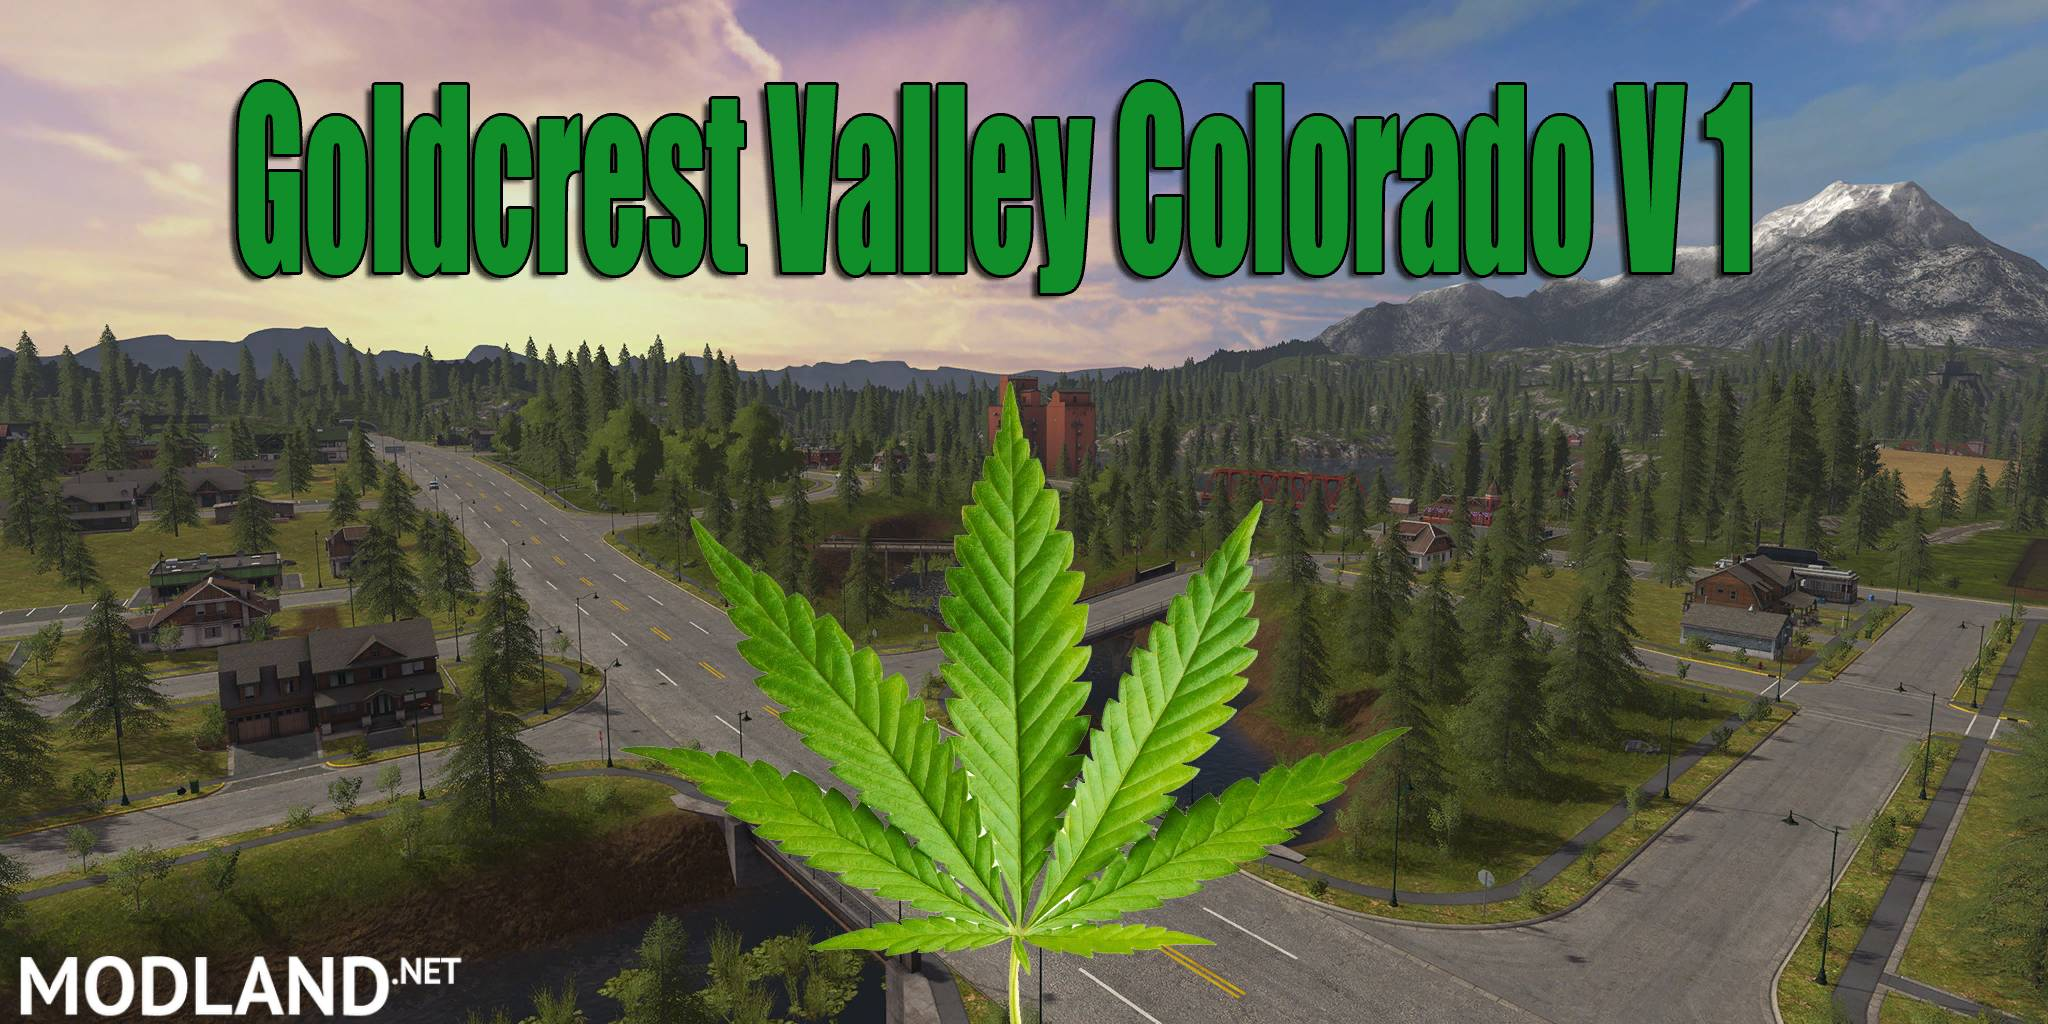 Big Valley Ford >> GoldCrest Valley Colorado V1 mod Farming Simulator 17